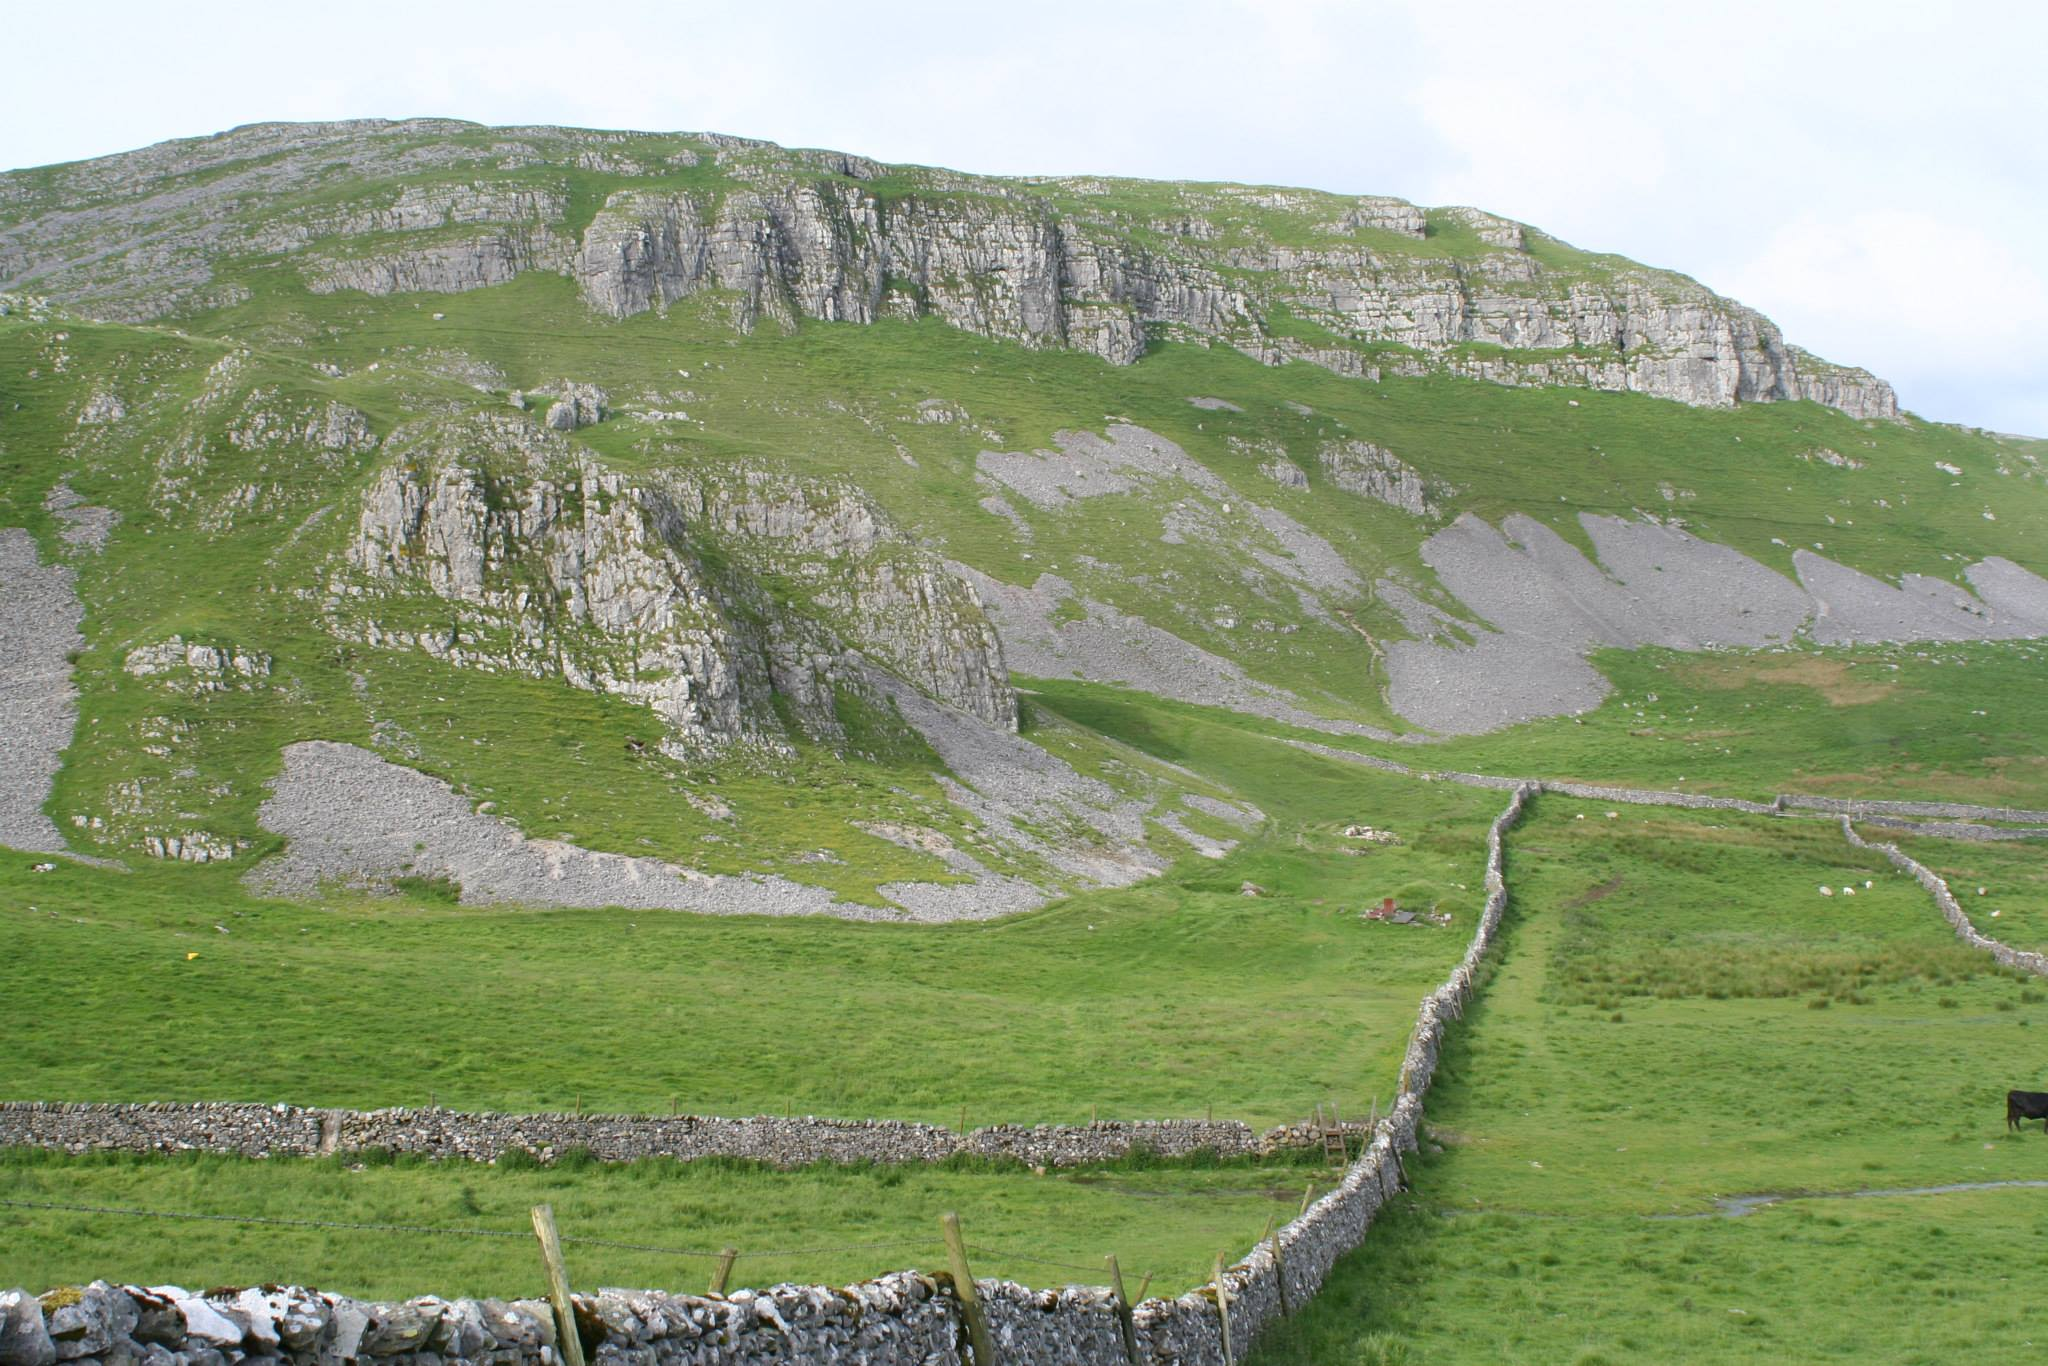 Attermire Scar, a great cliff eroded back from the line of the Mid Craven Fault, and left exposed by comparatively recent removal of shale cover, giving it a fresh appearance. Stephen Oldfield